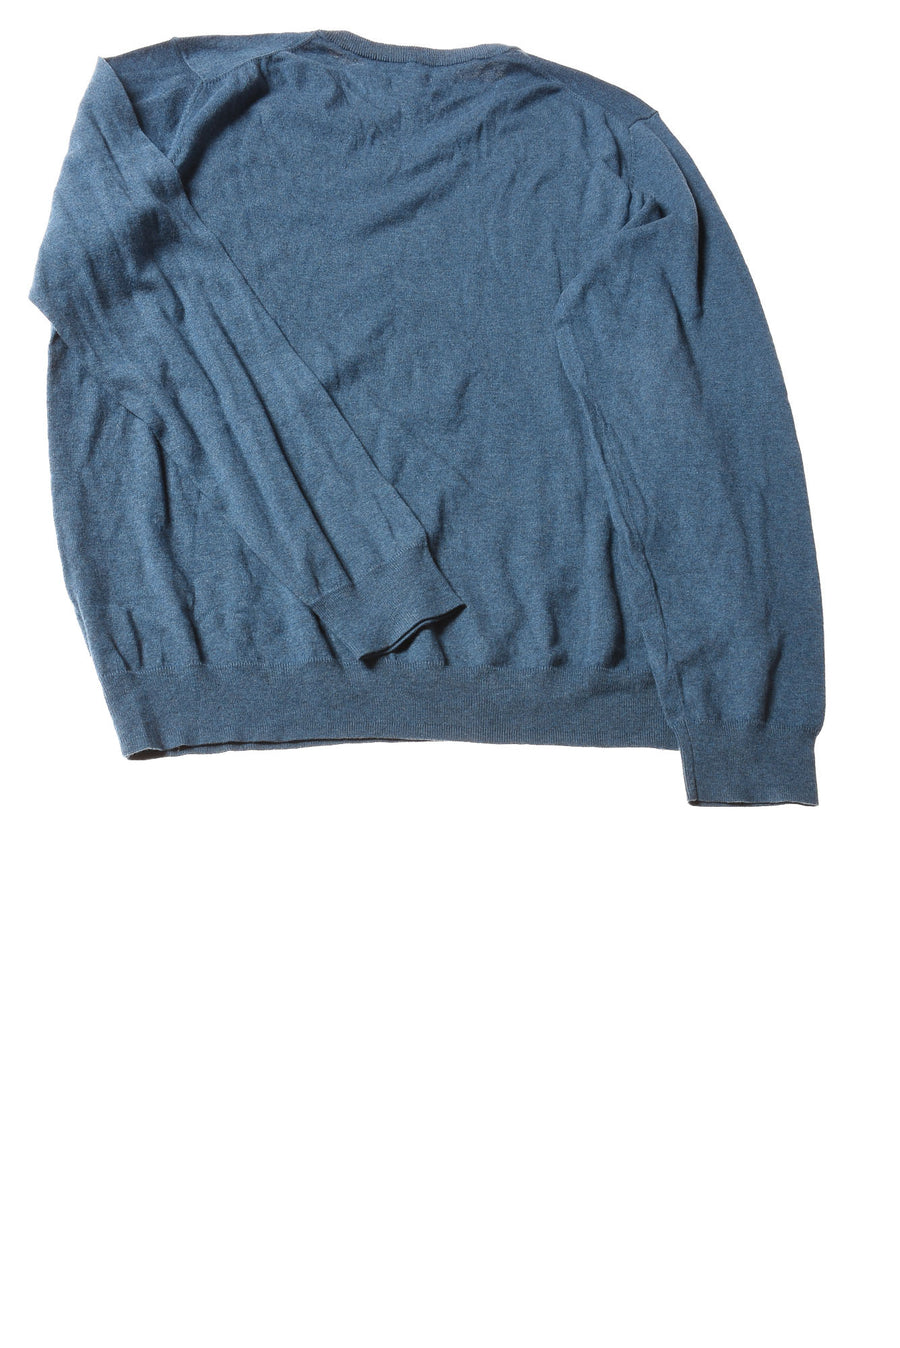 NEW Sonoma Men's Sweater XX-Large Blue